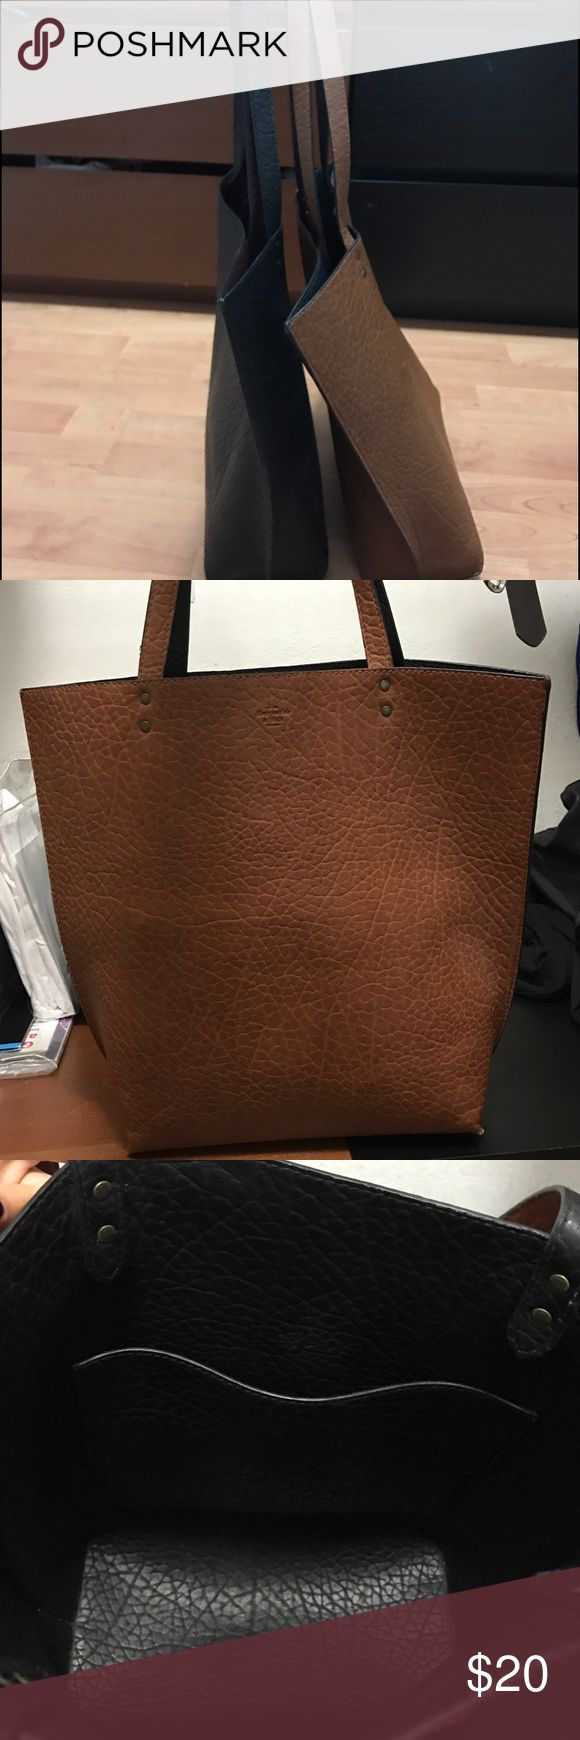 Abercrombie & Fitch handbag. Abercrombie & Fitch handbag. Reversible. Brown and Black. Shoulder handbag. Very spacious. Comfortable and calls a lot of attention. Perfect for any occasion. Work, beach, daily handbag. Abercrombie & Fitch Bags Shoulder Bags